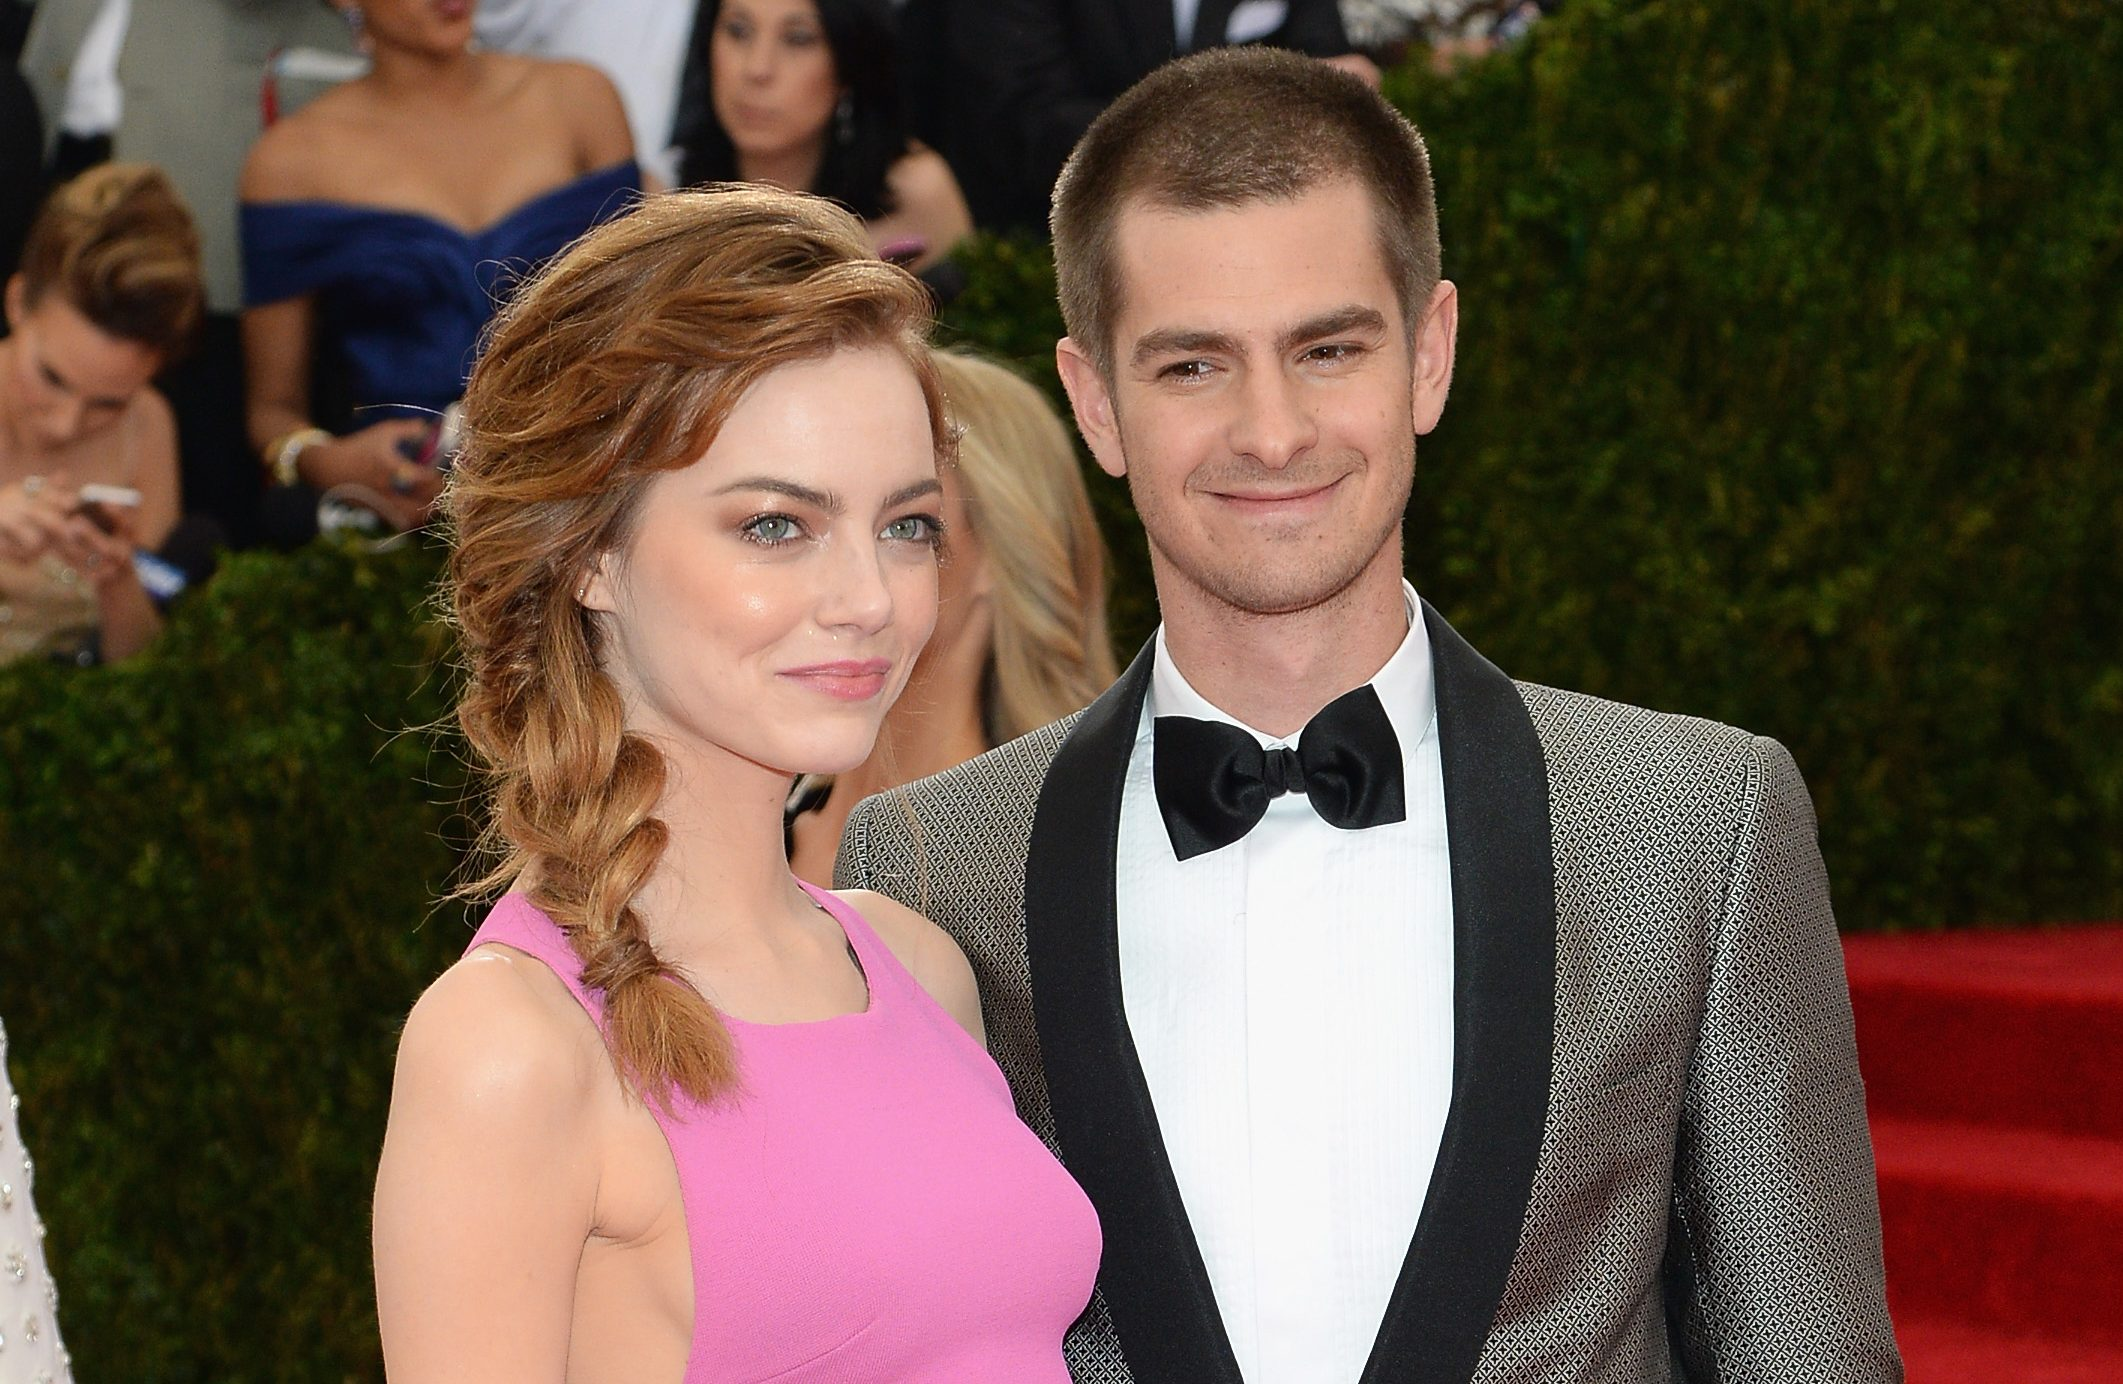 Emma Stone 'secretly visiting ex Andrew Garfield in London as pair rekindle romance two years after split'